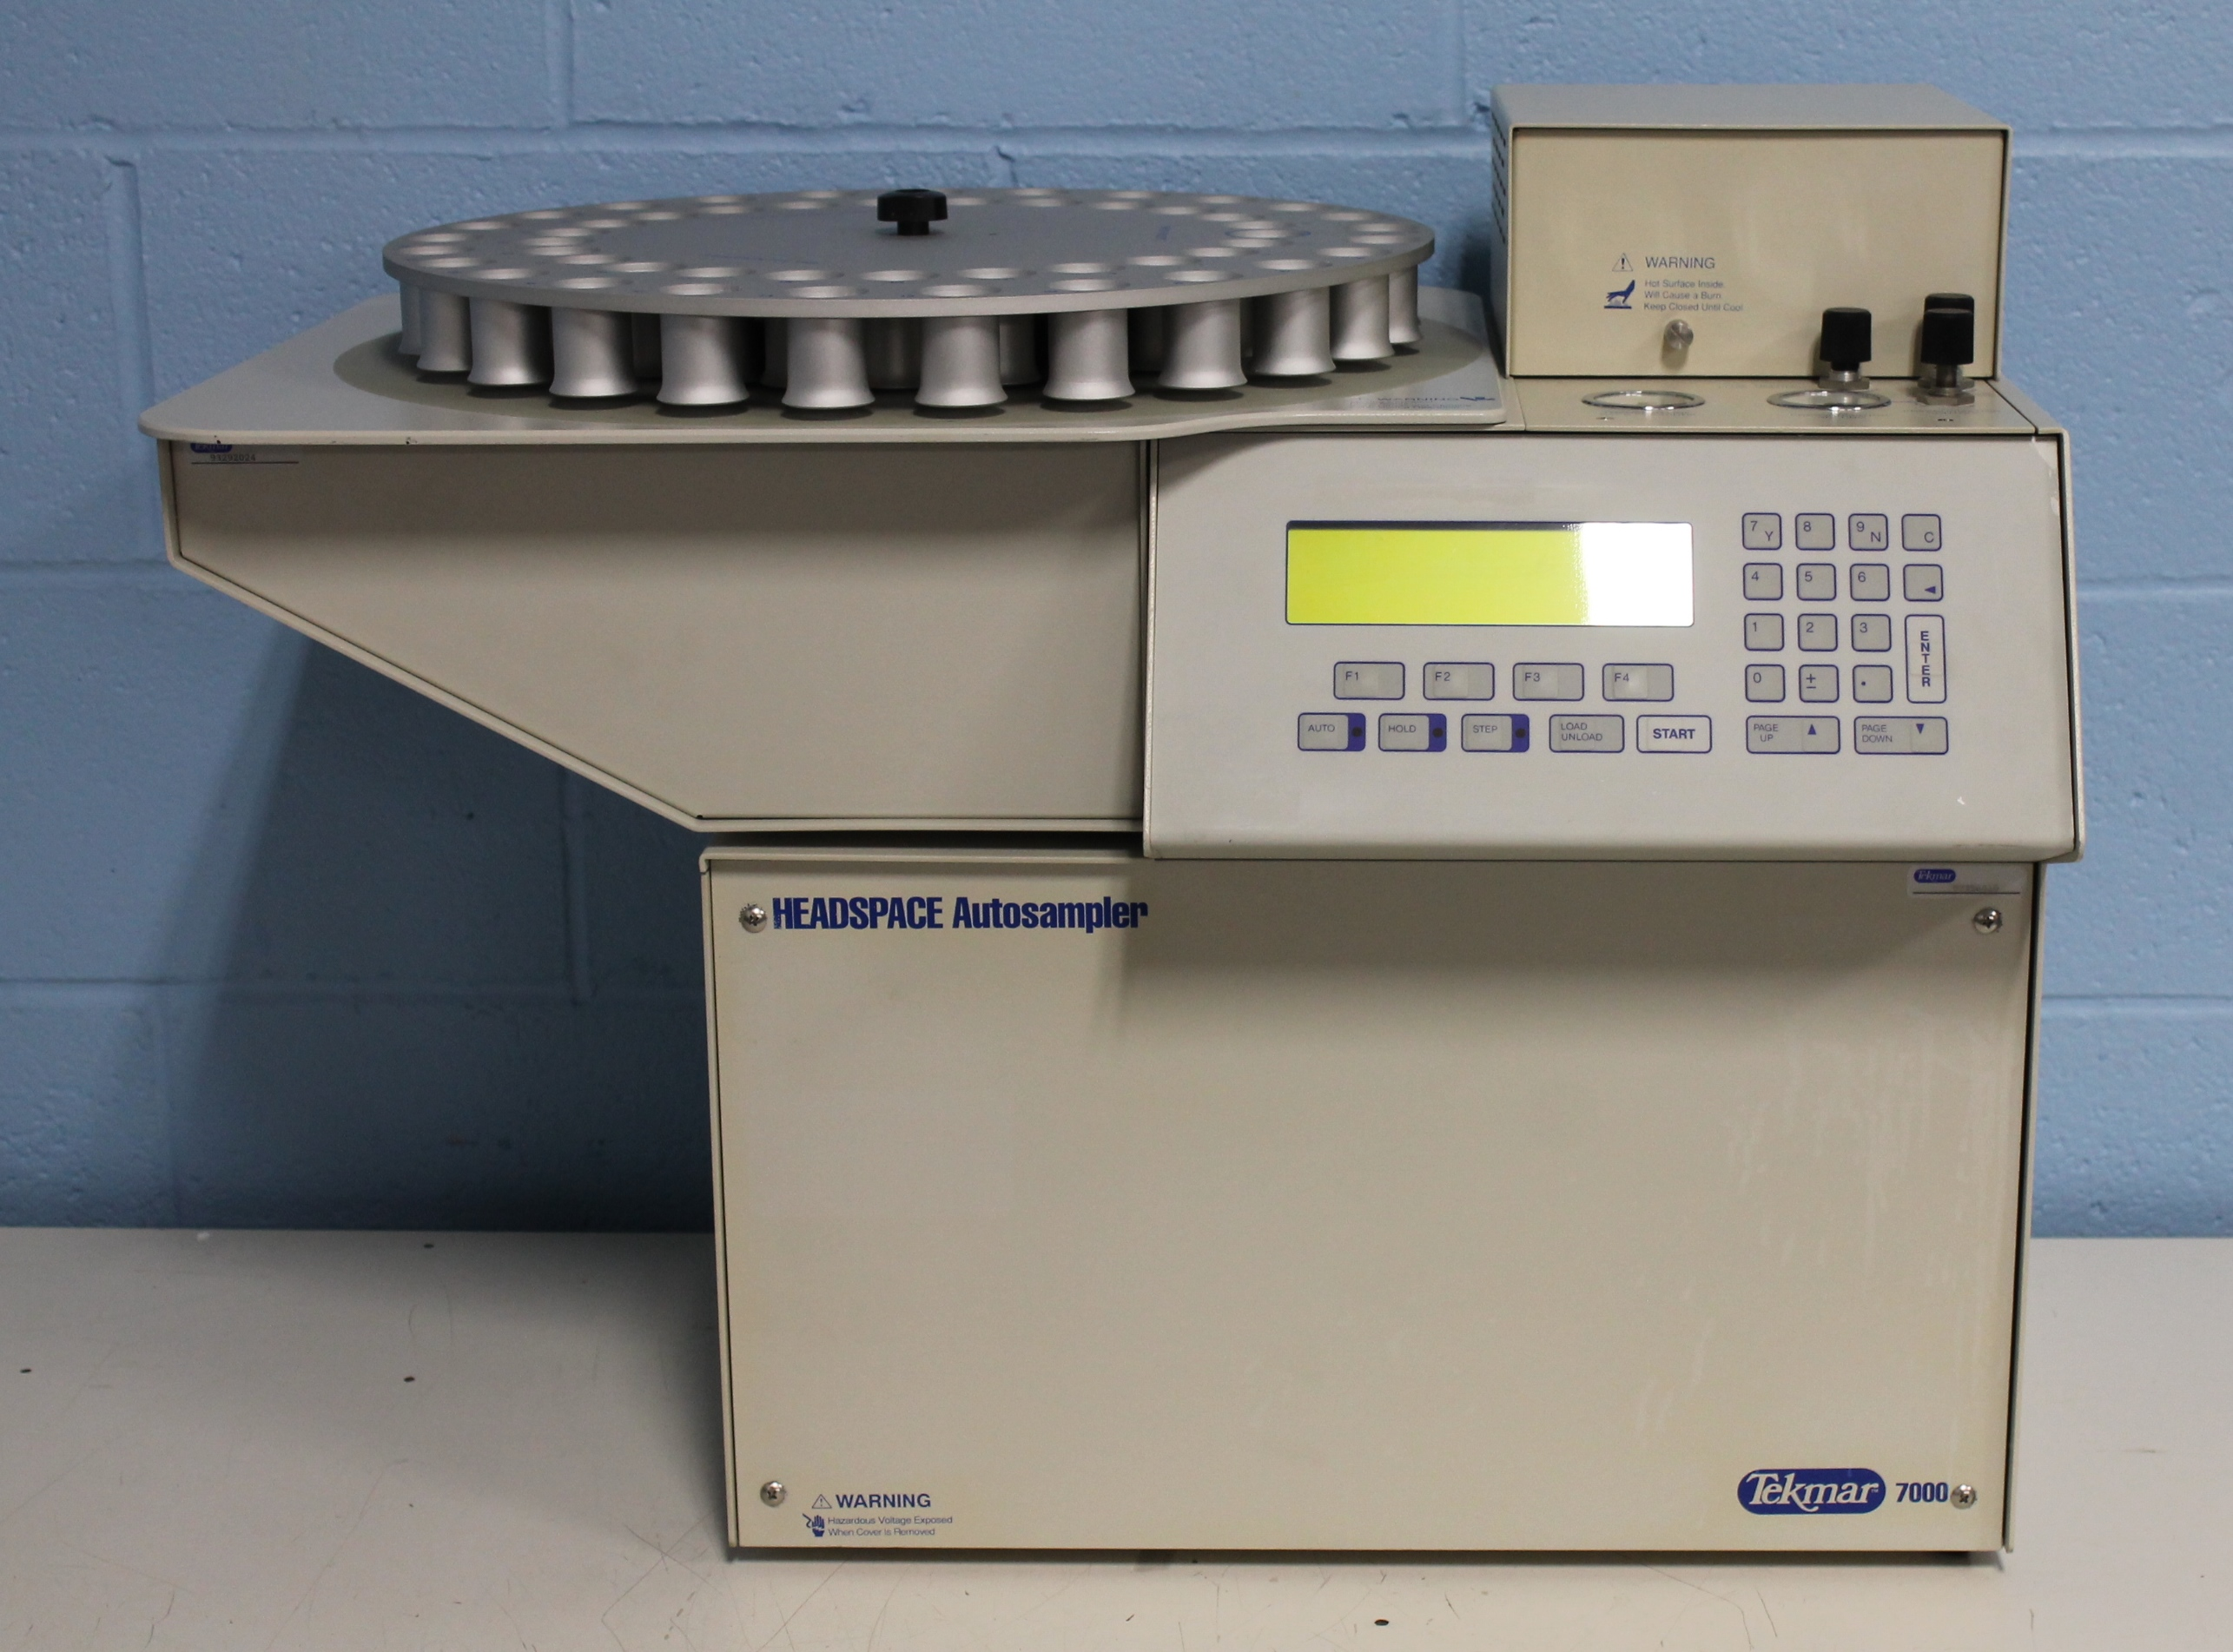 Tekmar 7000 Headspace Autosampler OPTIMIX Equilibration System Image